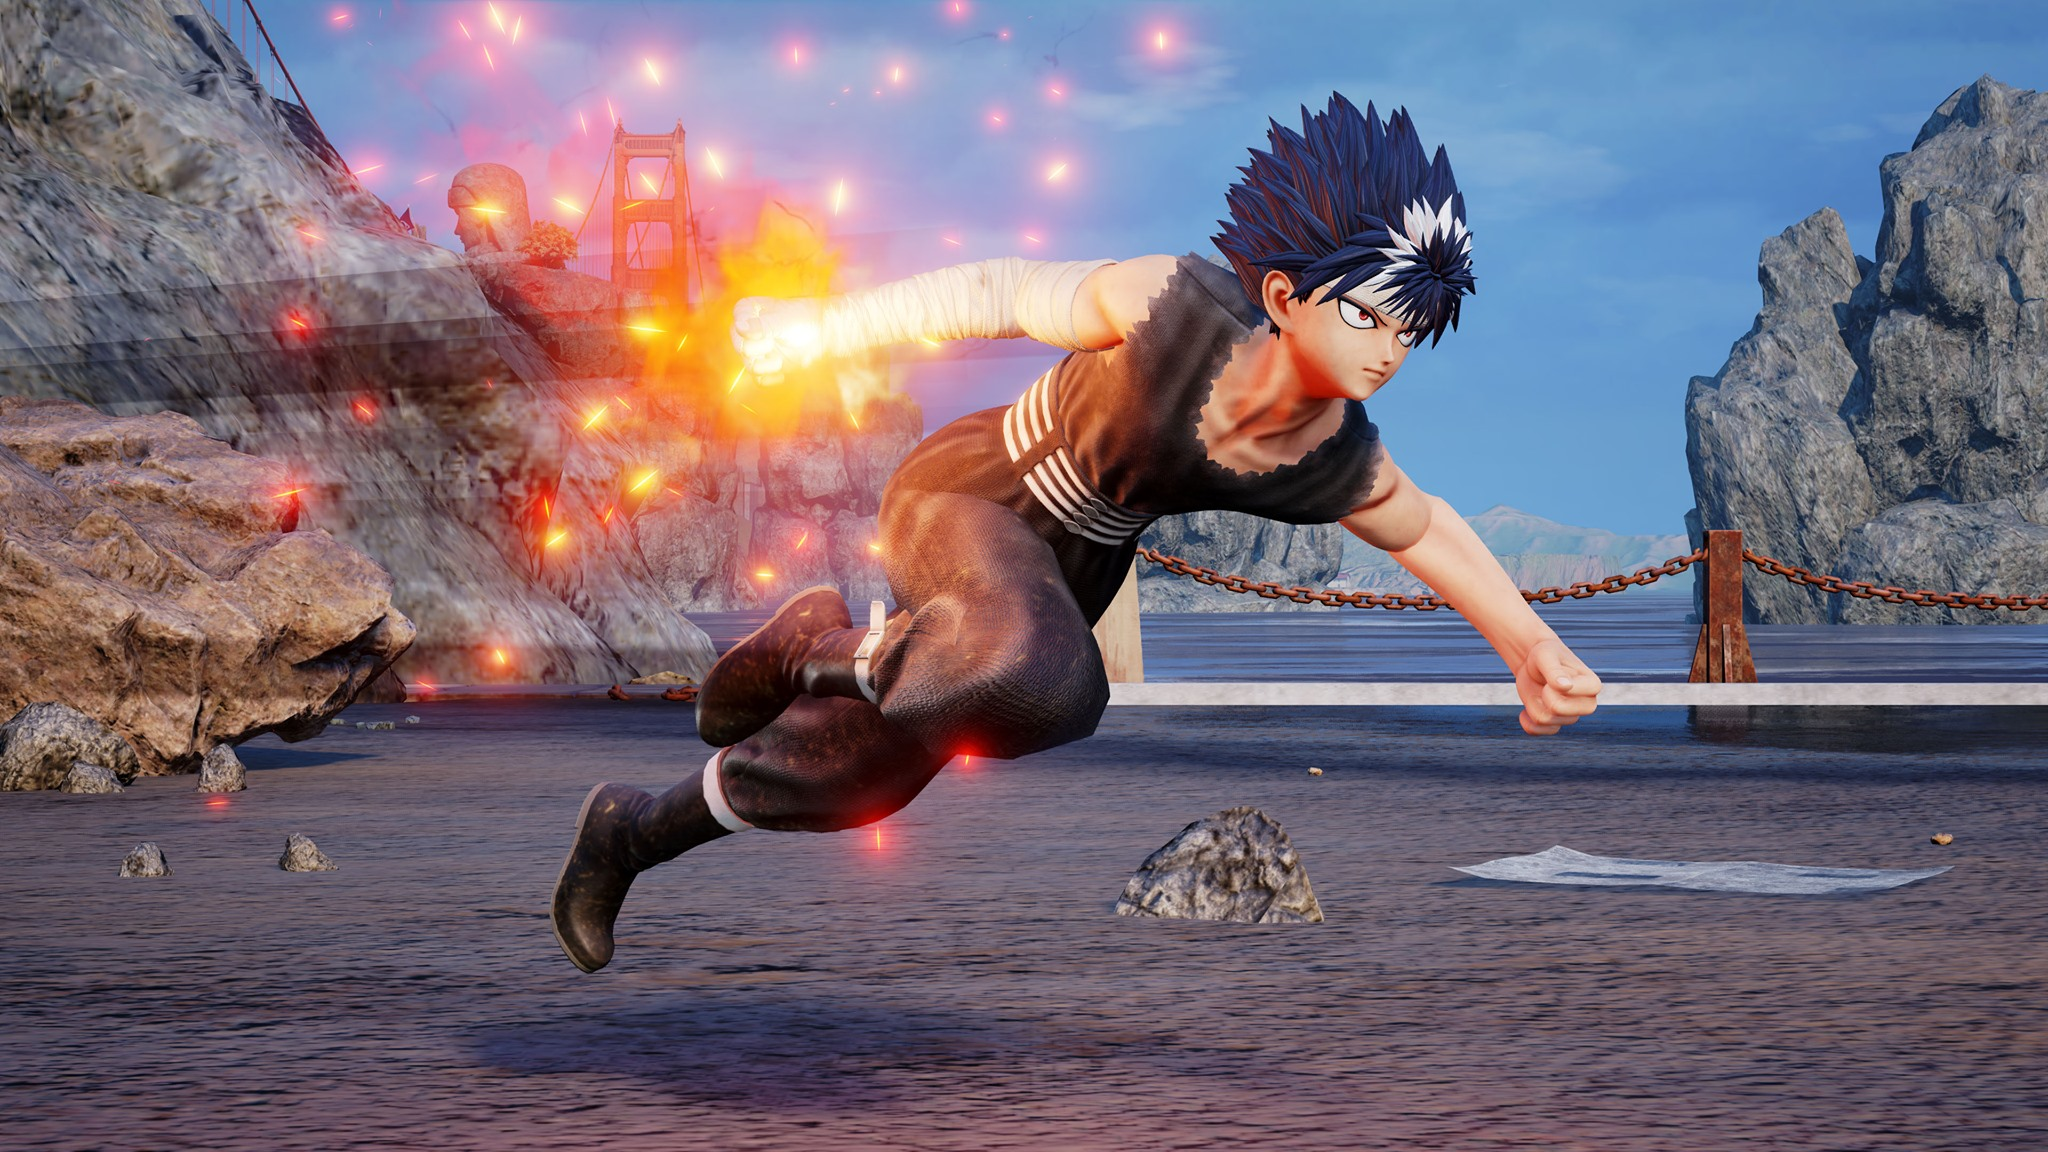 Hiei in Jump Force